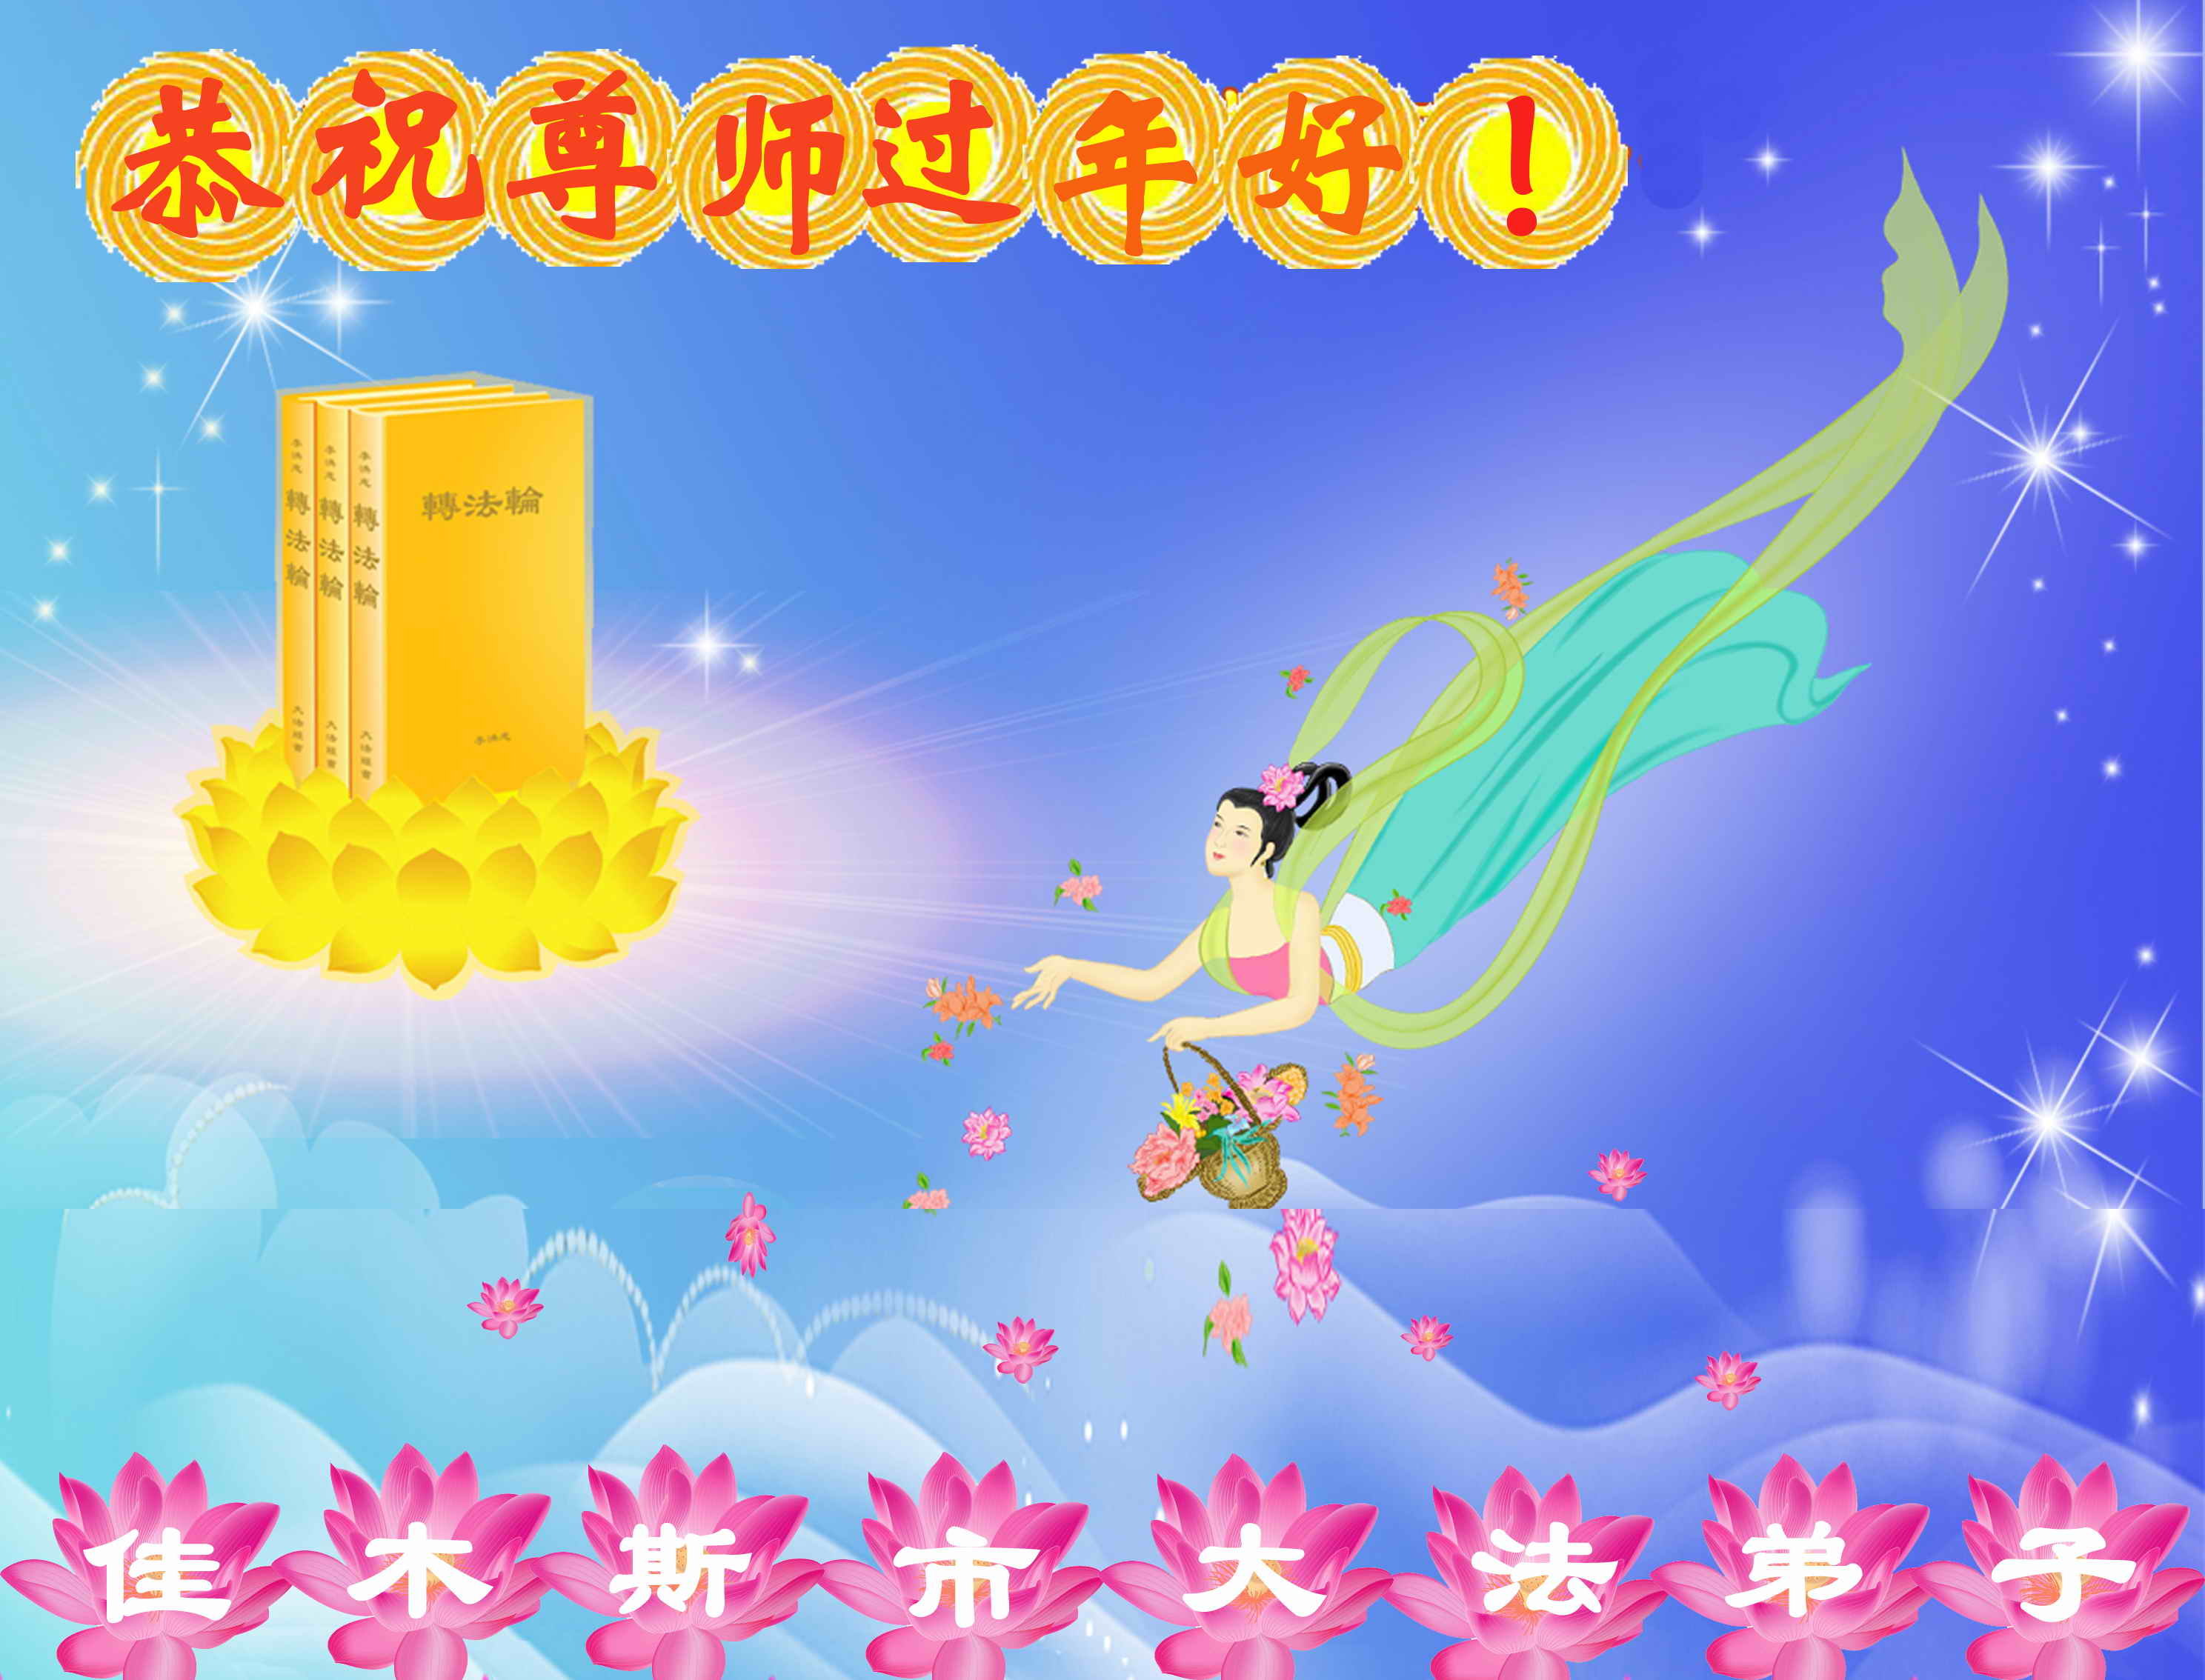 Falun Dafa Practitioners In China Respectfully Wish Revered Master A